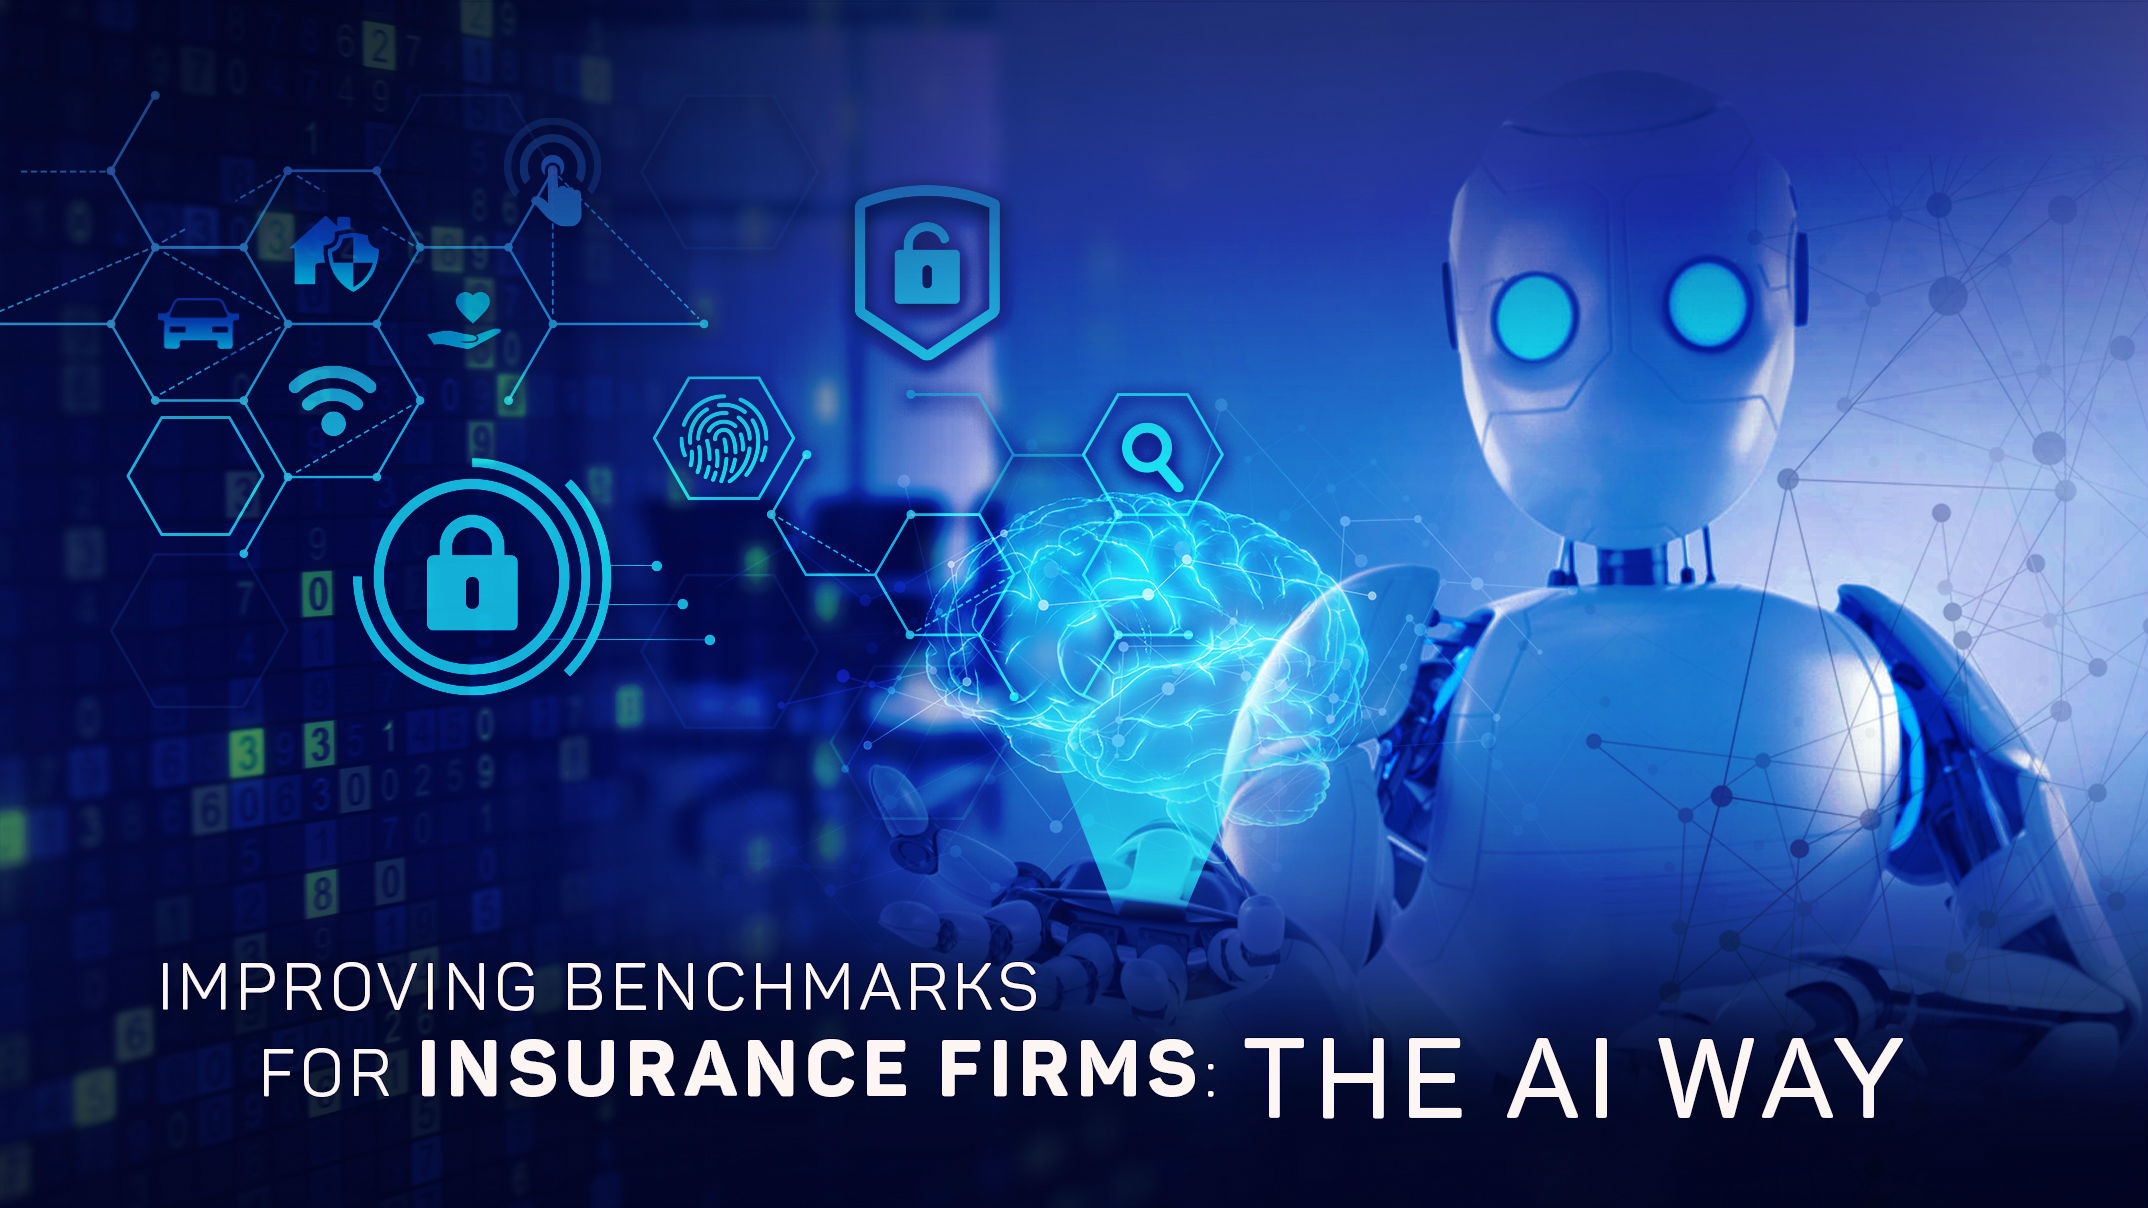 Improving Benchmarks for Insurance Firms: The AI Way